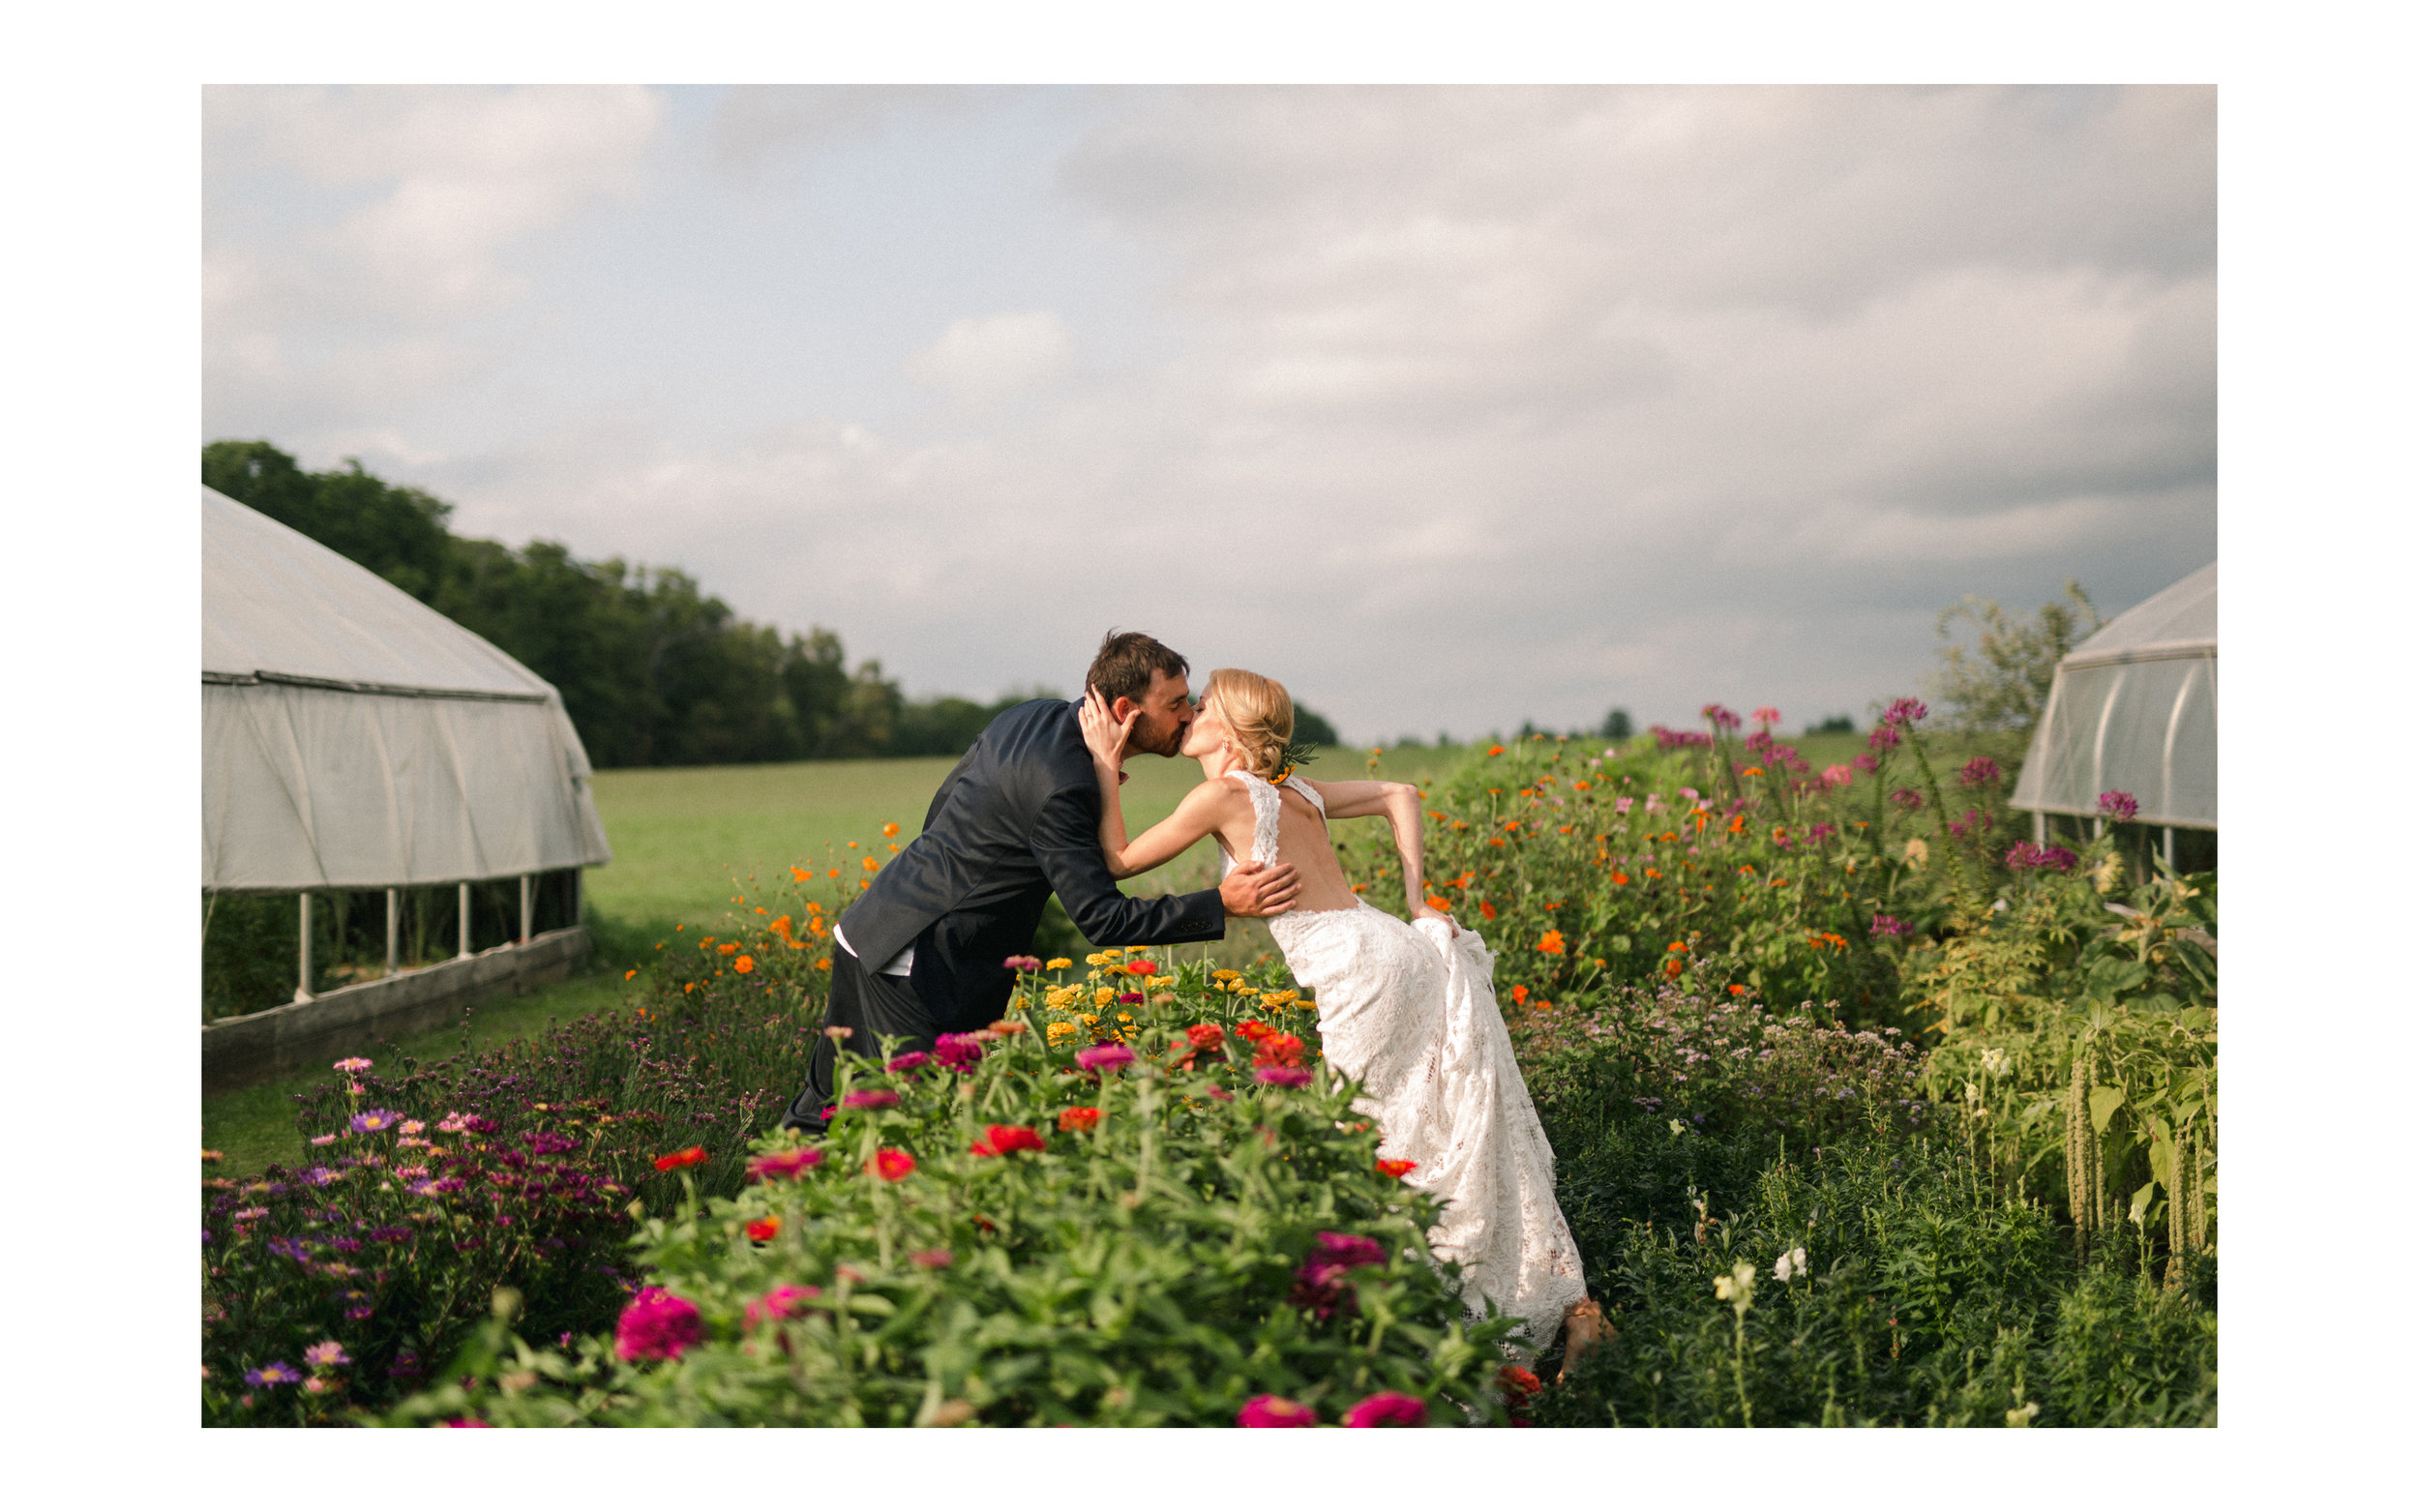 Stowe VT Farm Wedding Fine Art Wedding Photographer_Meg Haley Photographs_026.jpg